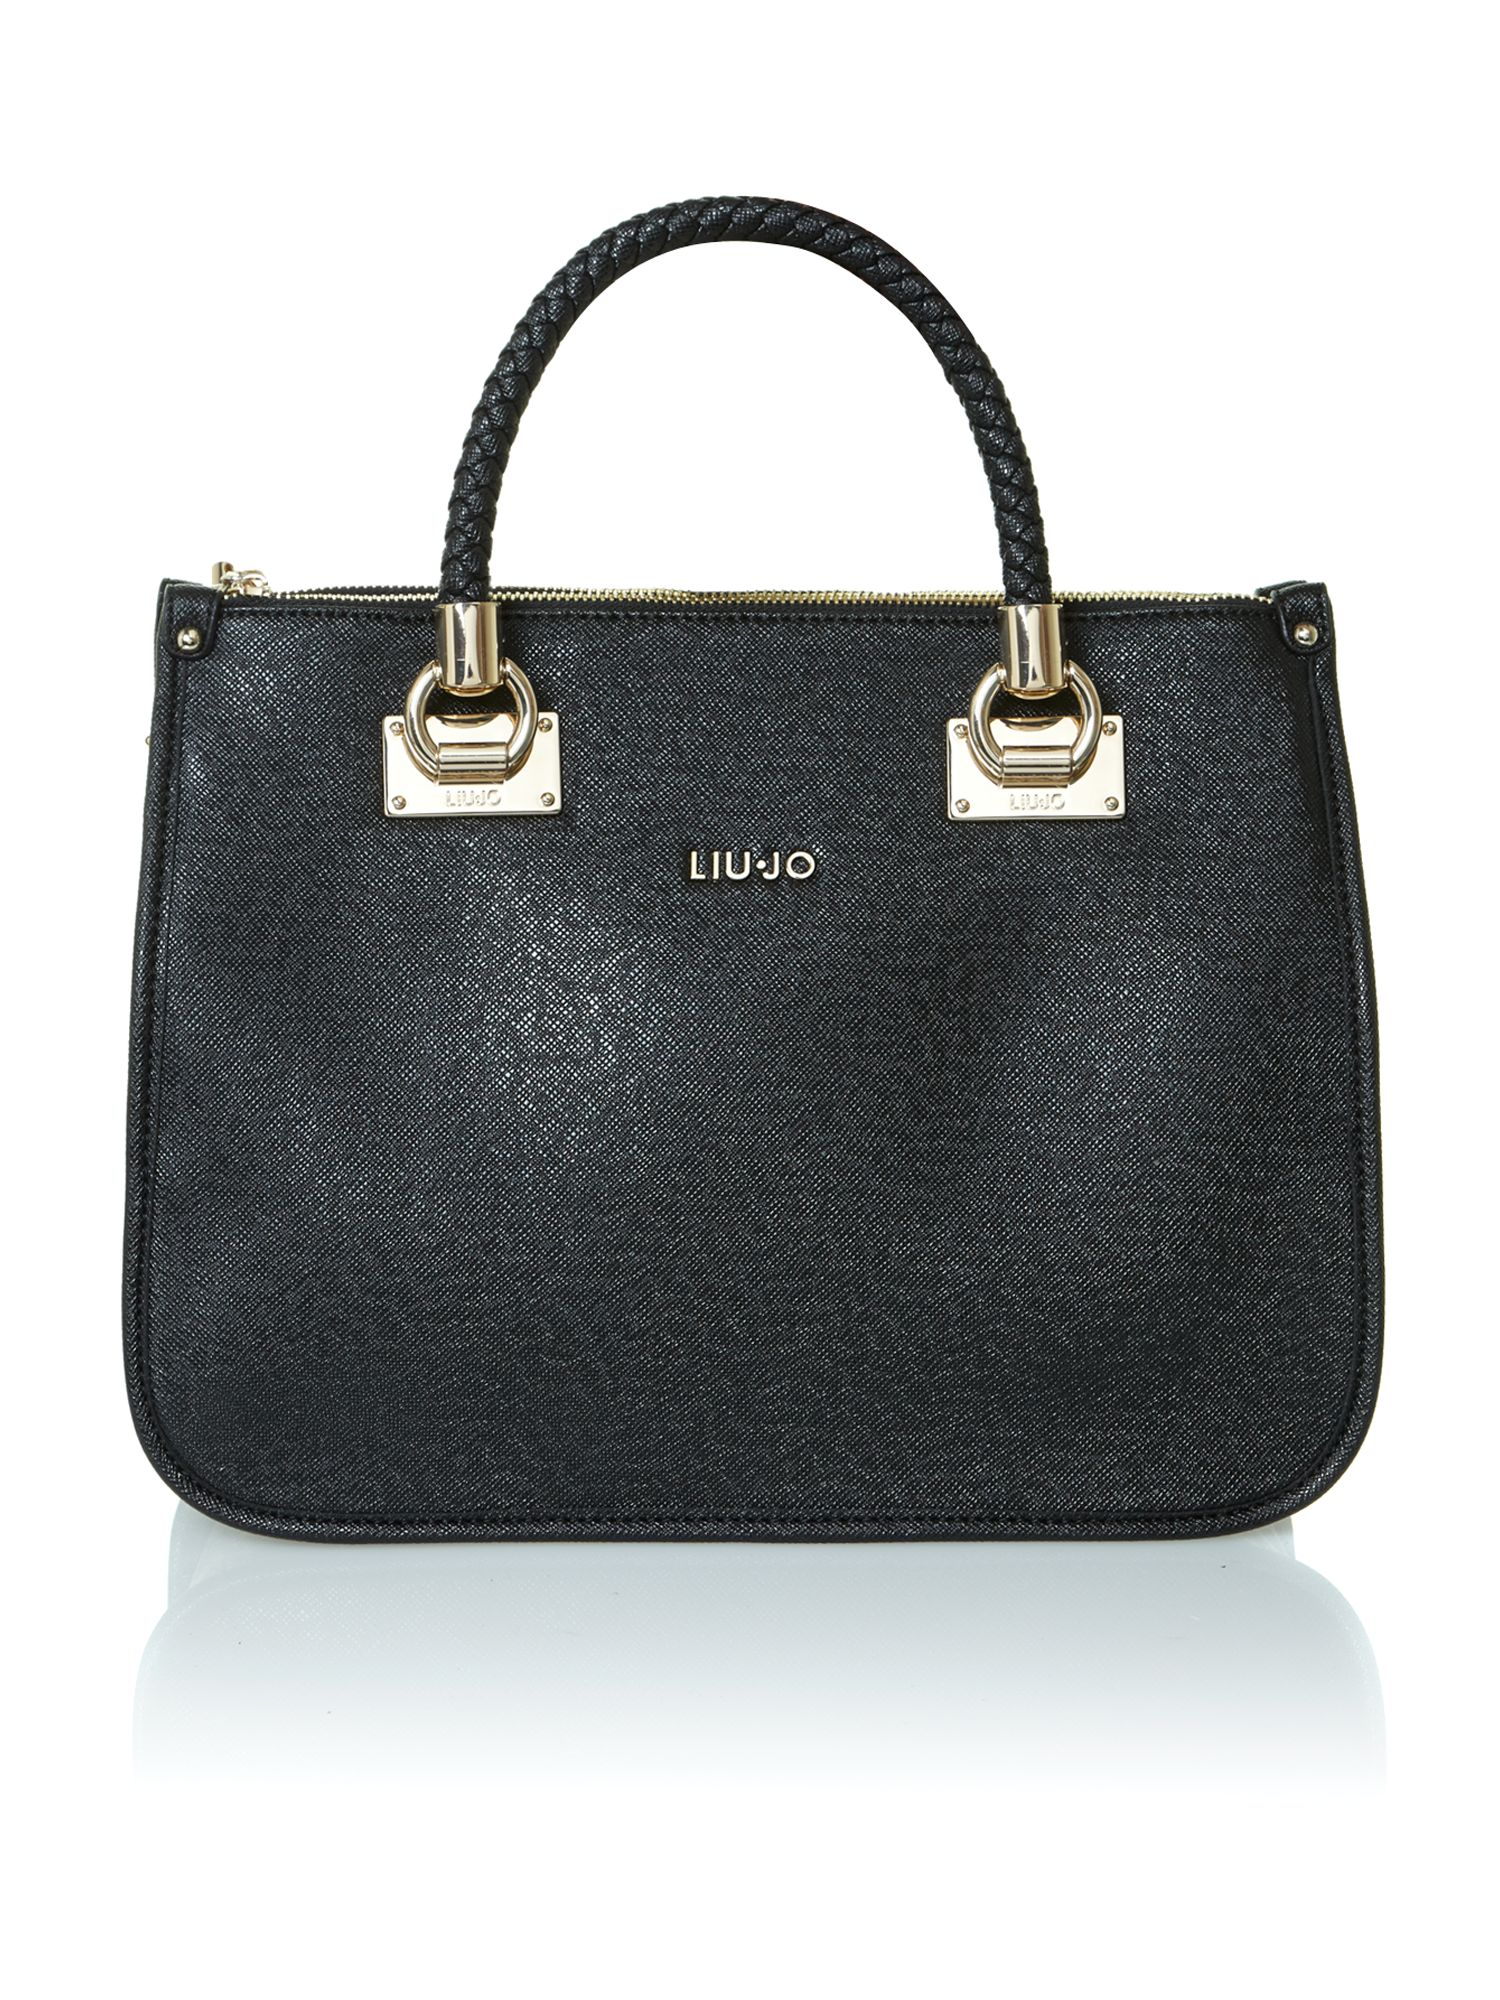 Anna Black Saffiano tote bag